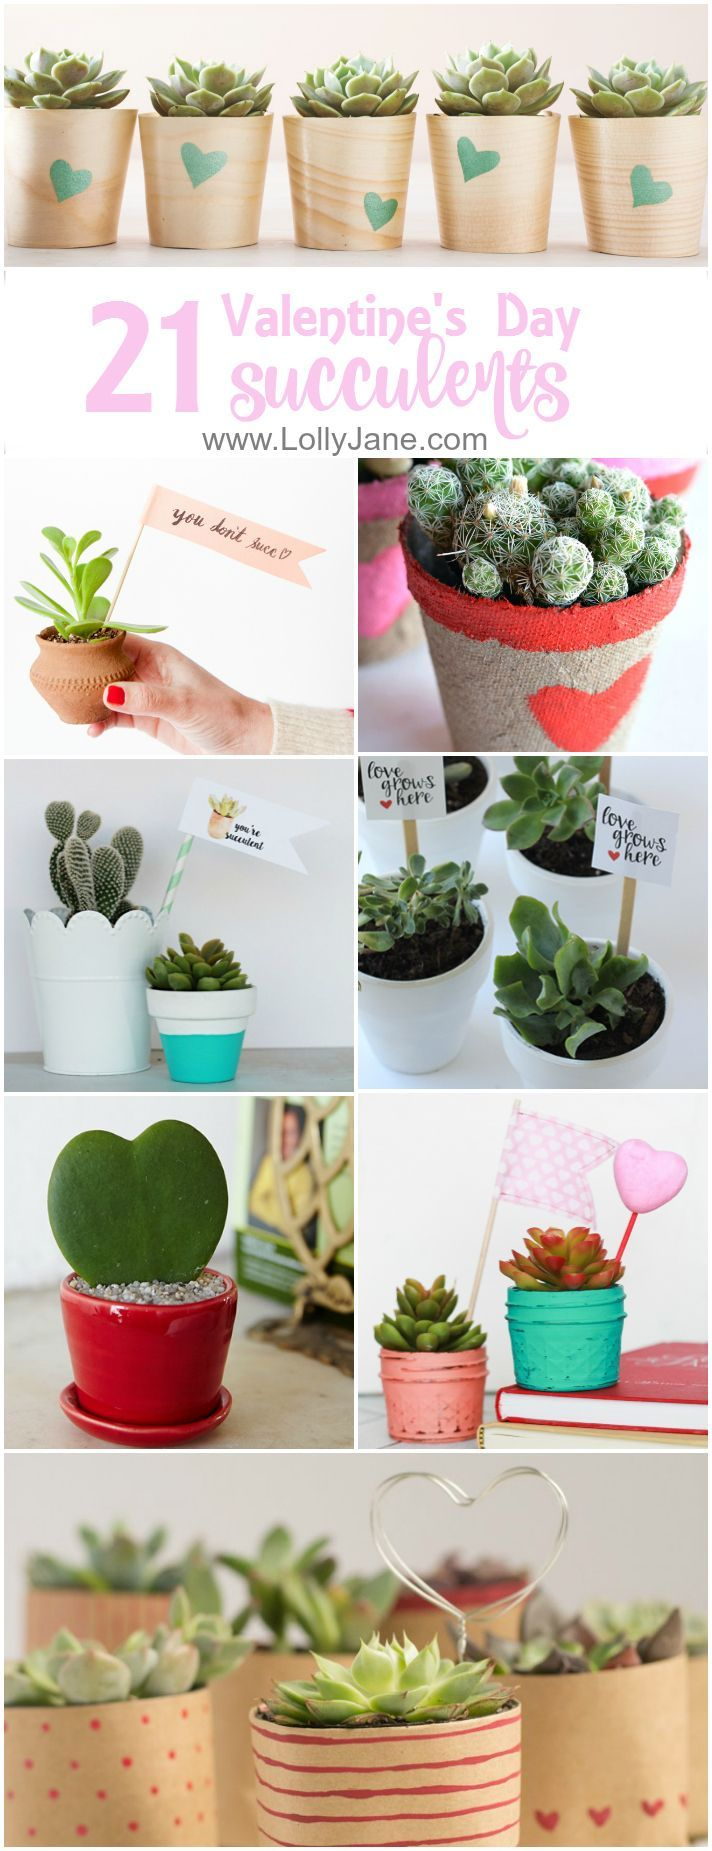 Free coloring pages road to emmaus - 21 Valentine S Day Succulent A Collection Of Inexpensive Valentine S Day Gifts Easy Succulent Gift